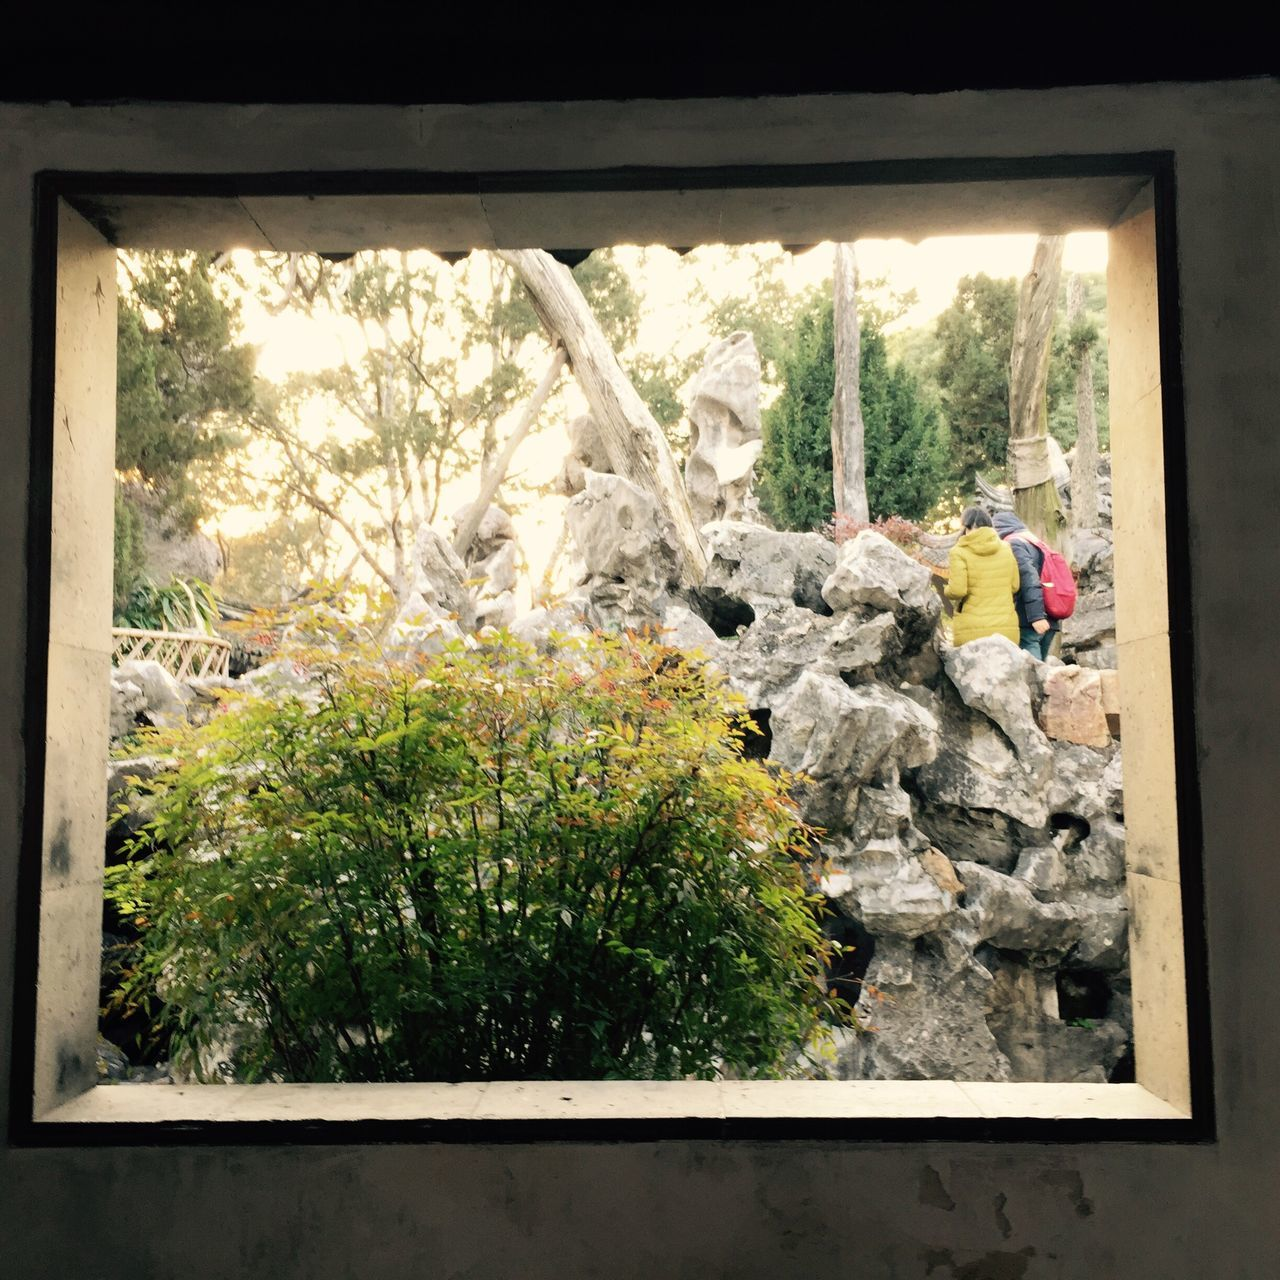 window, tree, growth, day, nature, plant, rock - object, indoors, no people, architecture, greenhouse